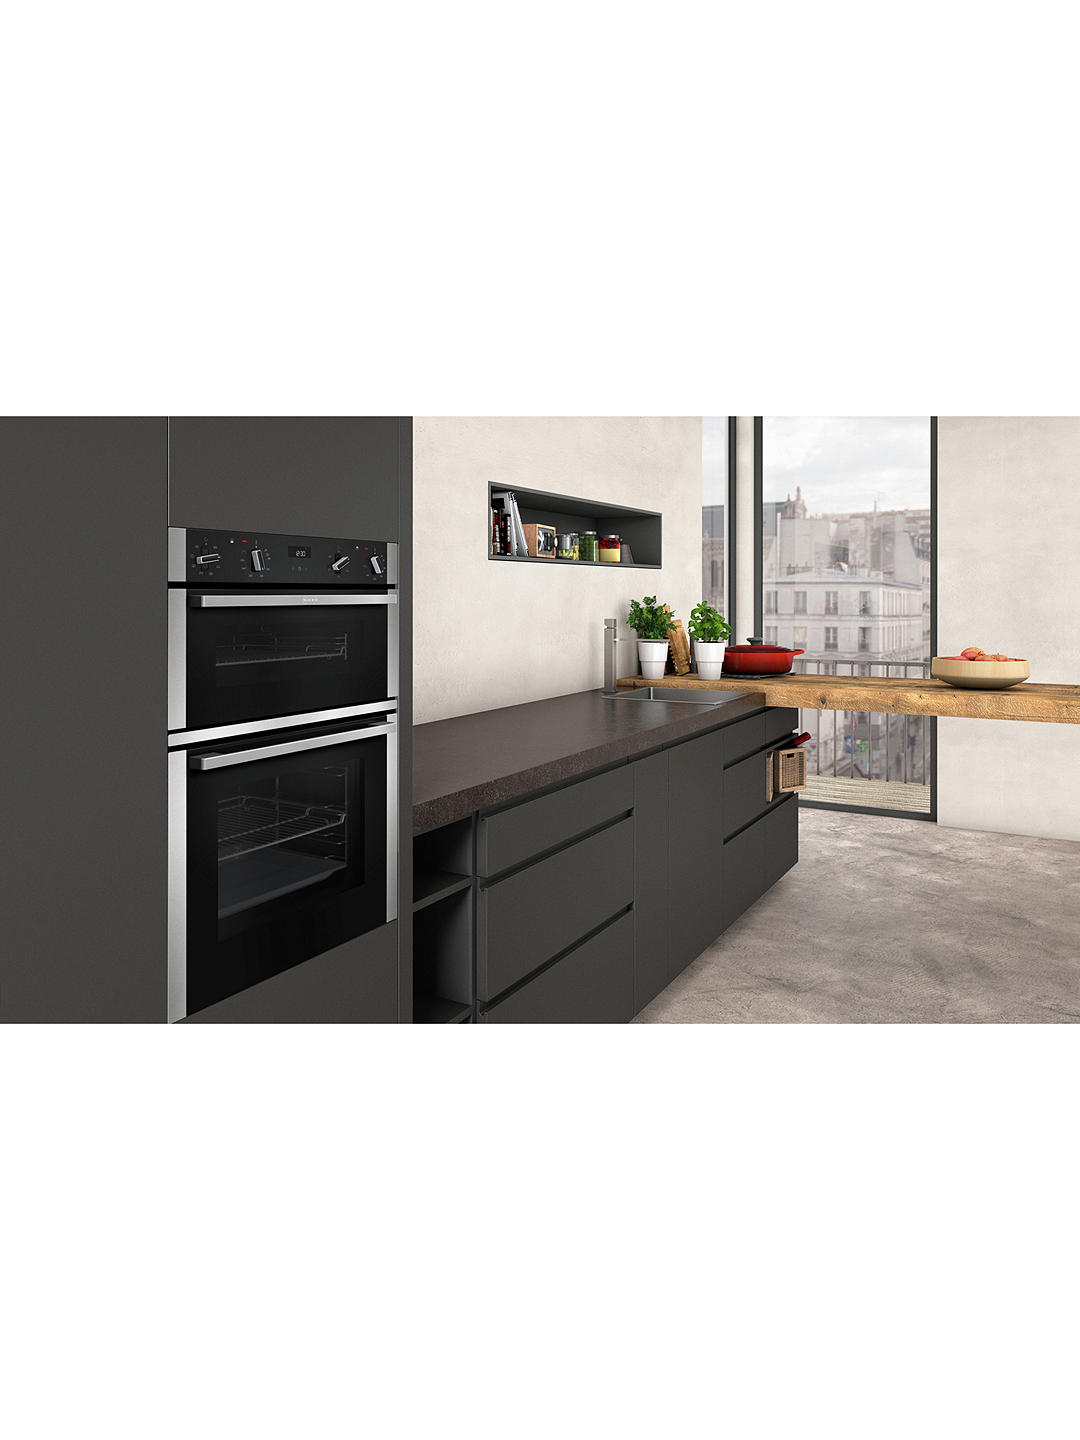 Buy Neff U1ACE2HN0B Built-In Double Oven, Stainless Steel Online at johnlewis.com